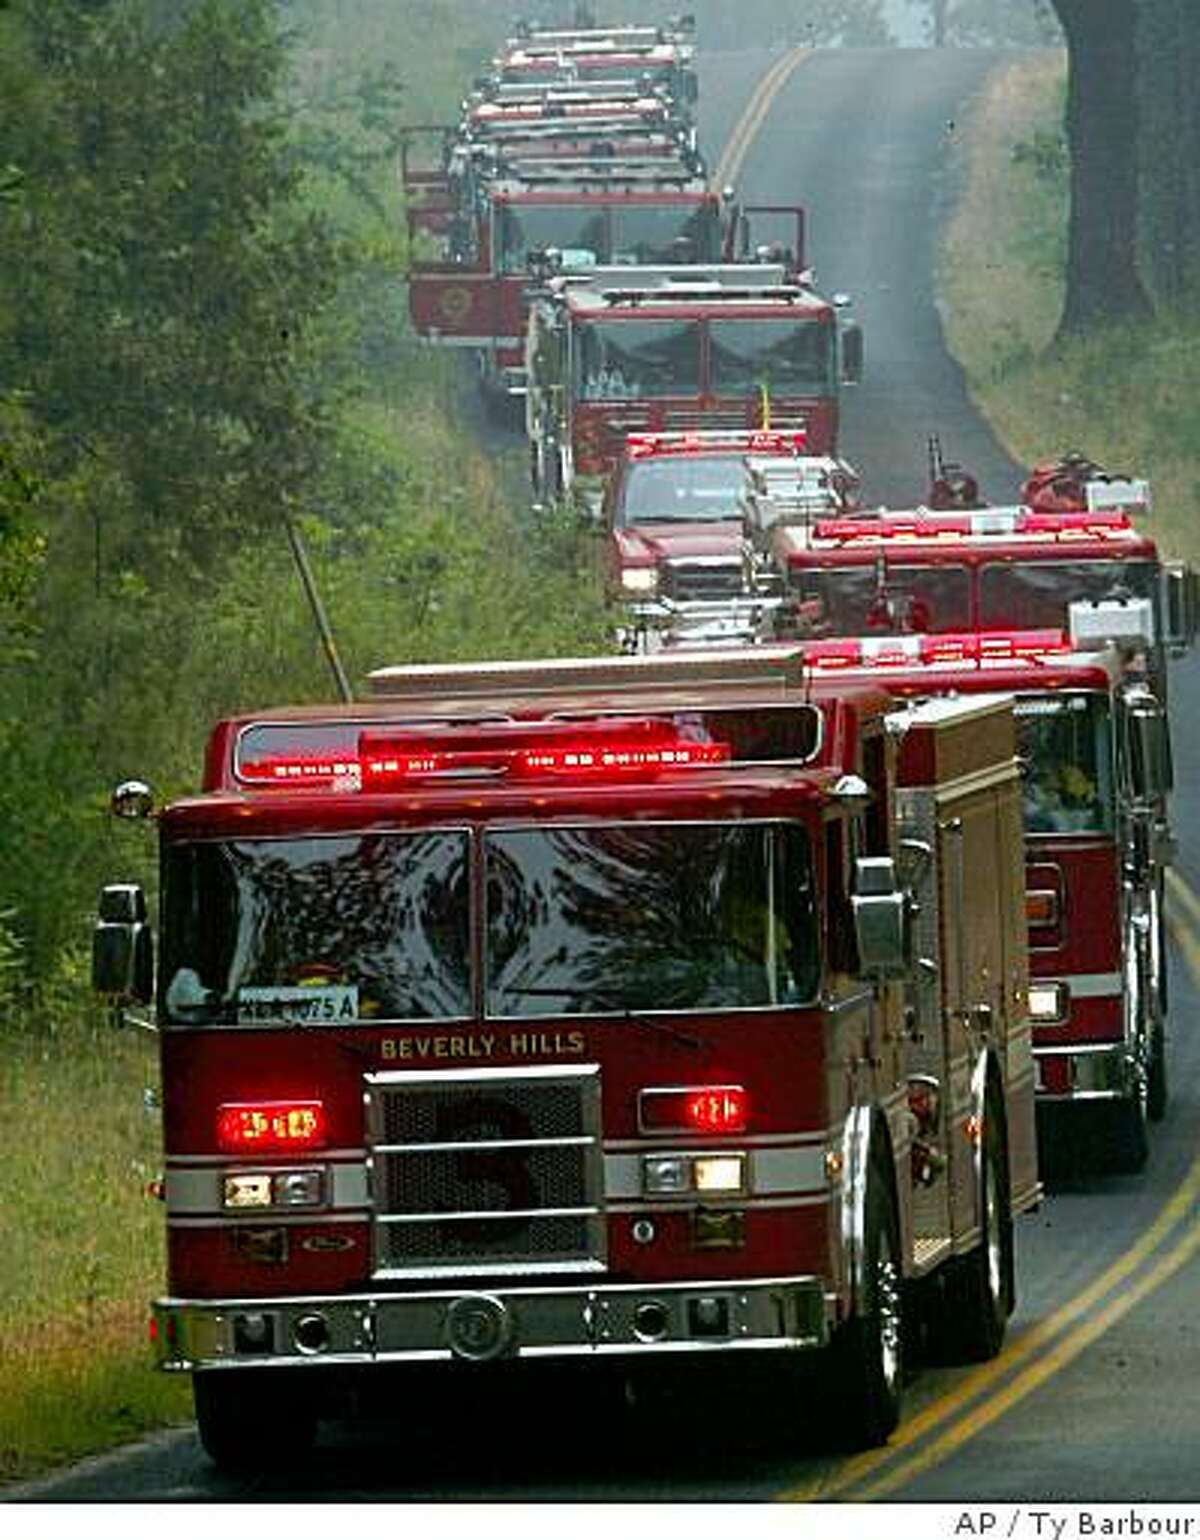 Cal Fire engines, mostly from Southern California, pour into the Camelot subdivision for structure protection as the Empire fire grows in Butte County, CA., Tuesday June 24, 2008. In less than a day, an electrical storm unleashed nearly 8,000 lightning strikes that set more than 800 wildfires across Northern California _ a rare example of